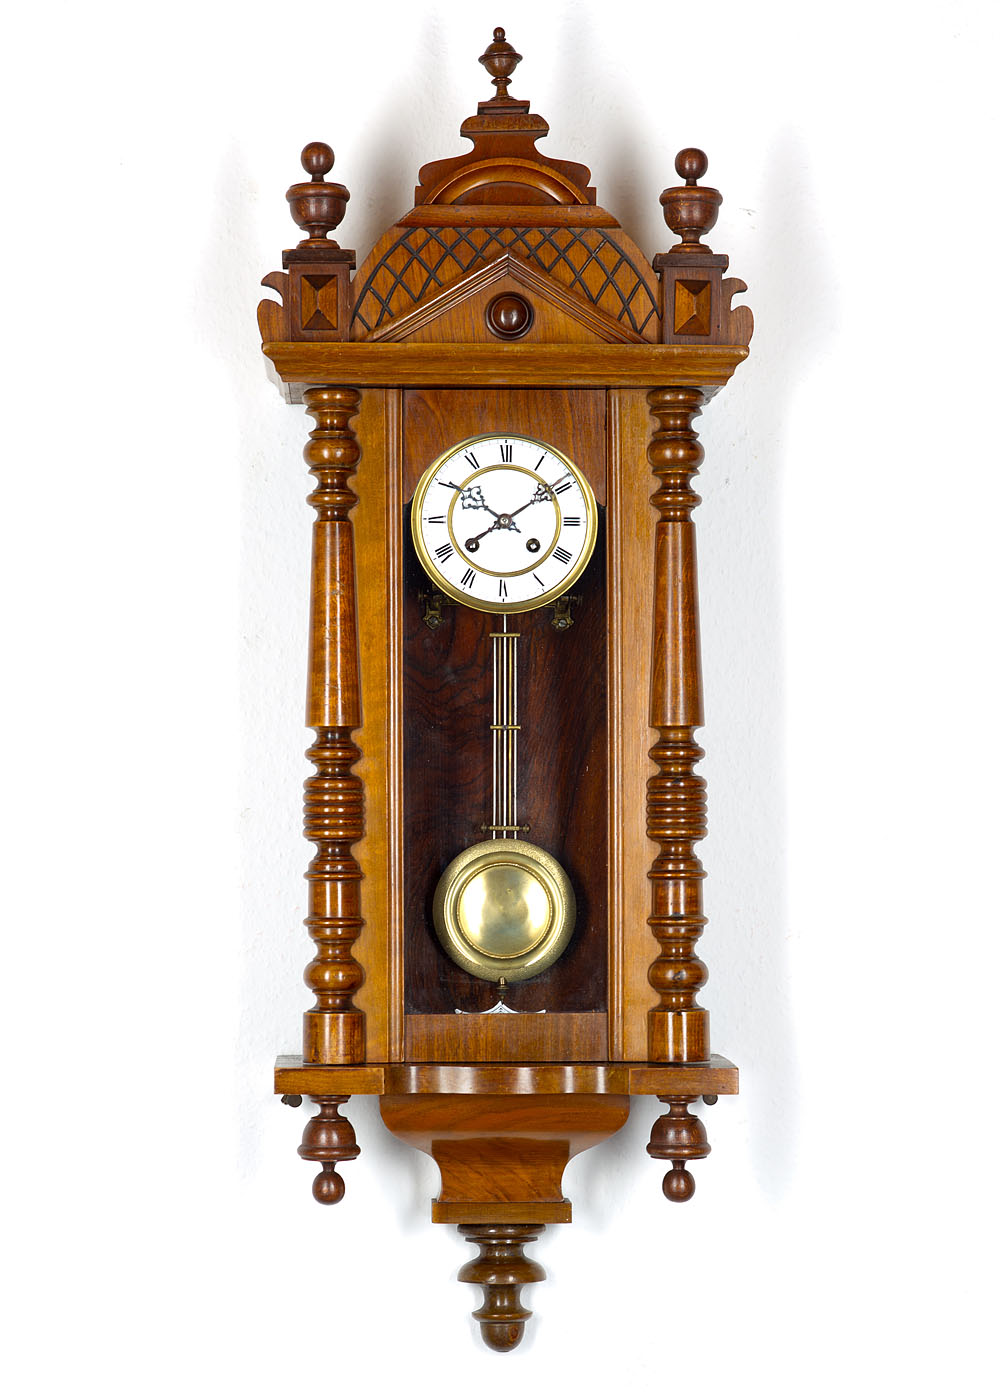 Antiques collectibles kienzle antique clocks - Wall mounted grandfather clock ...